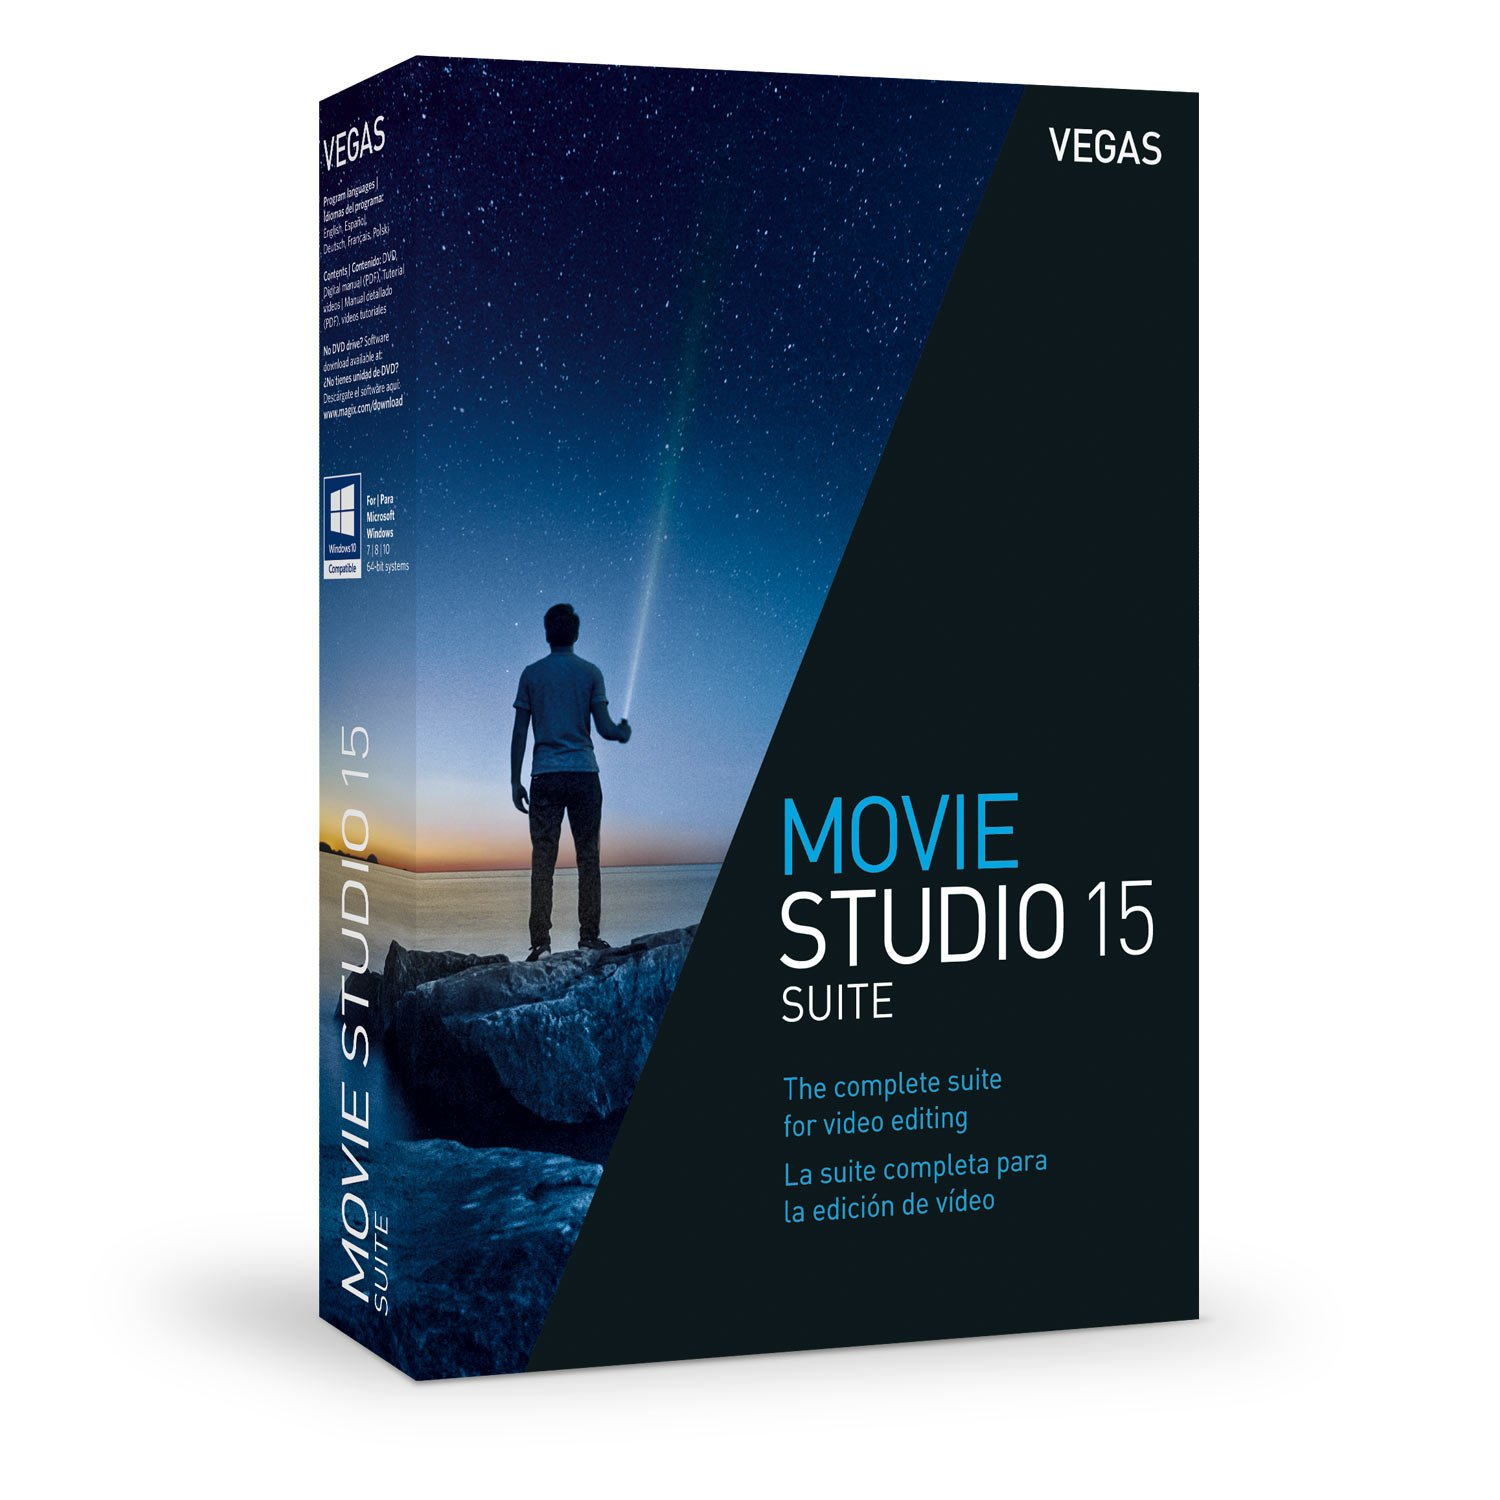 VEGAS Movie Studio 15 Suite - Create Stunning Movies by Vegas